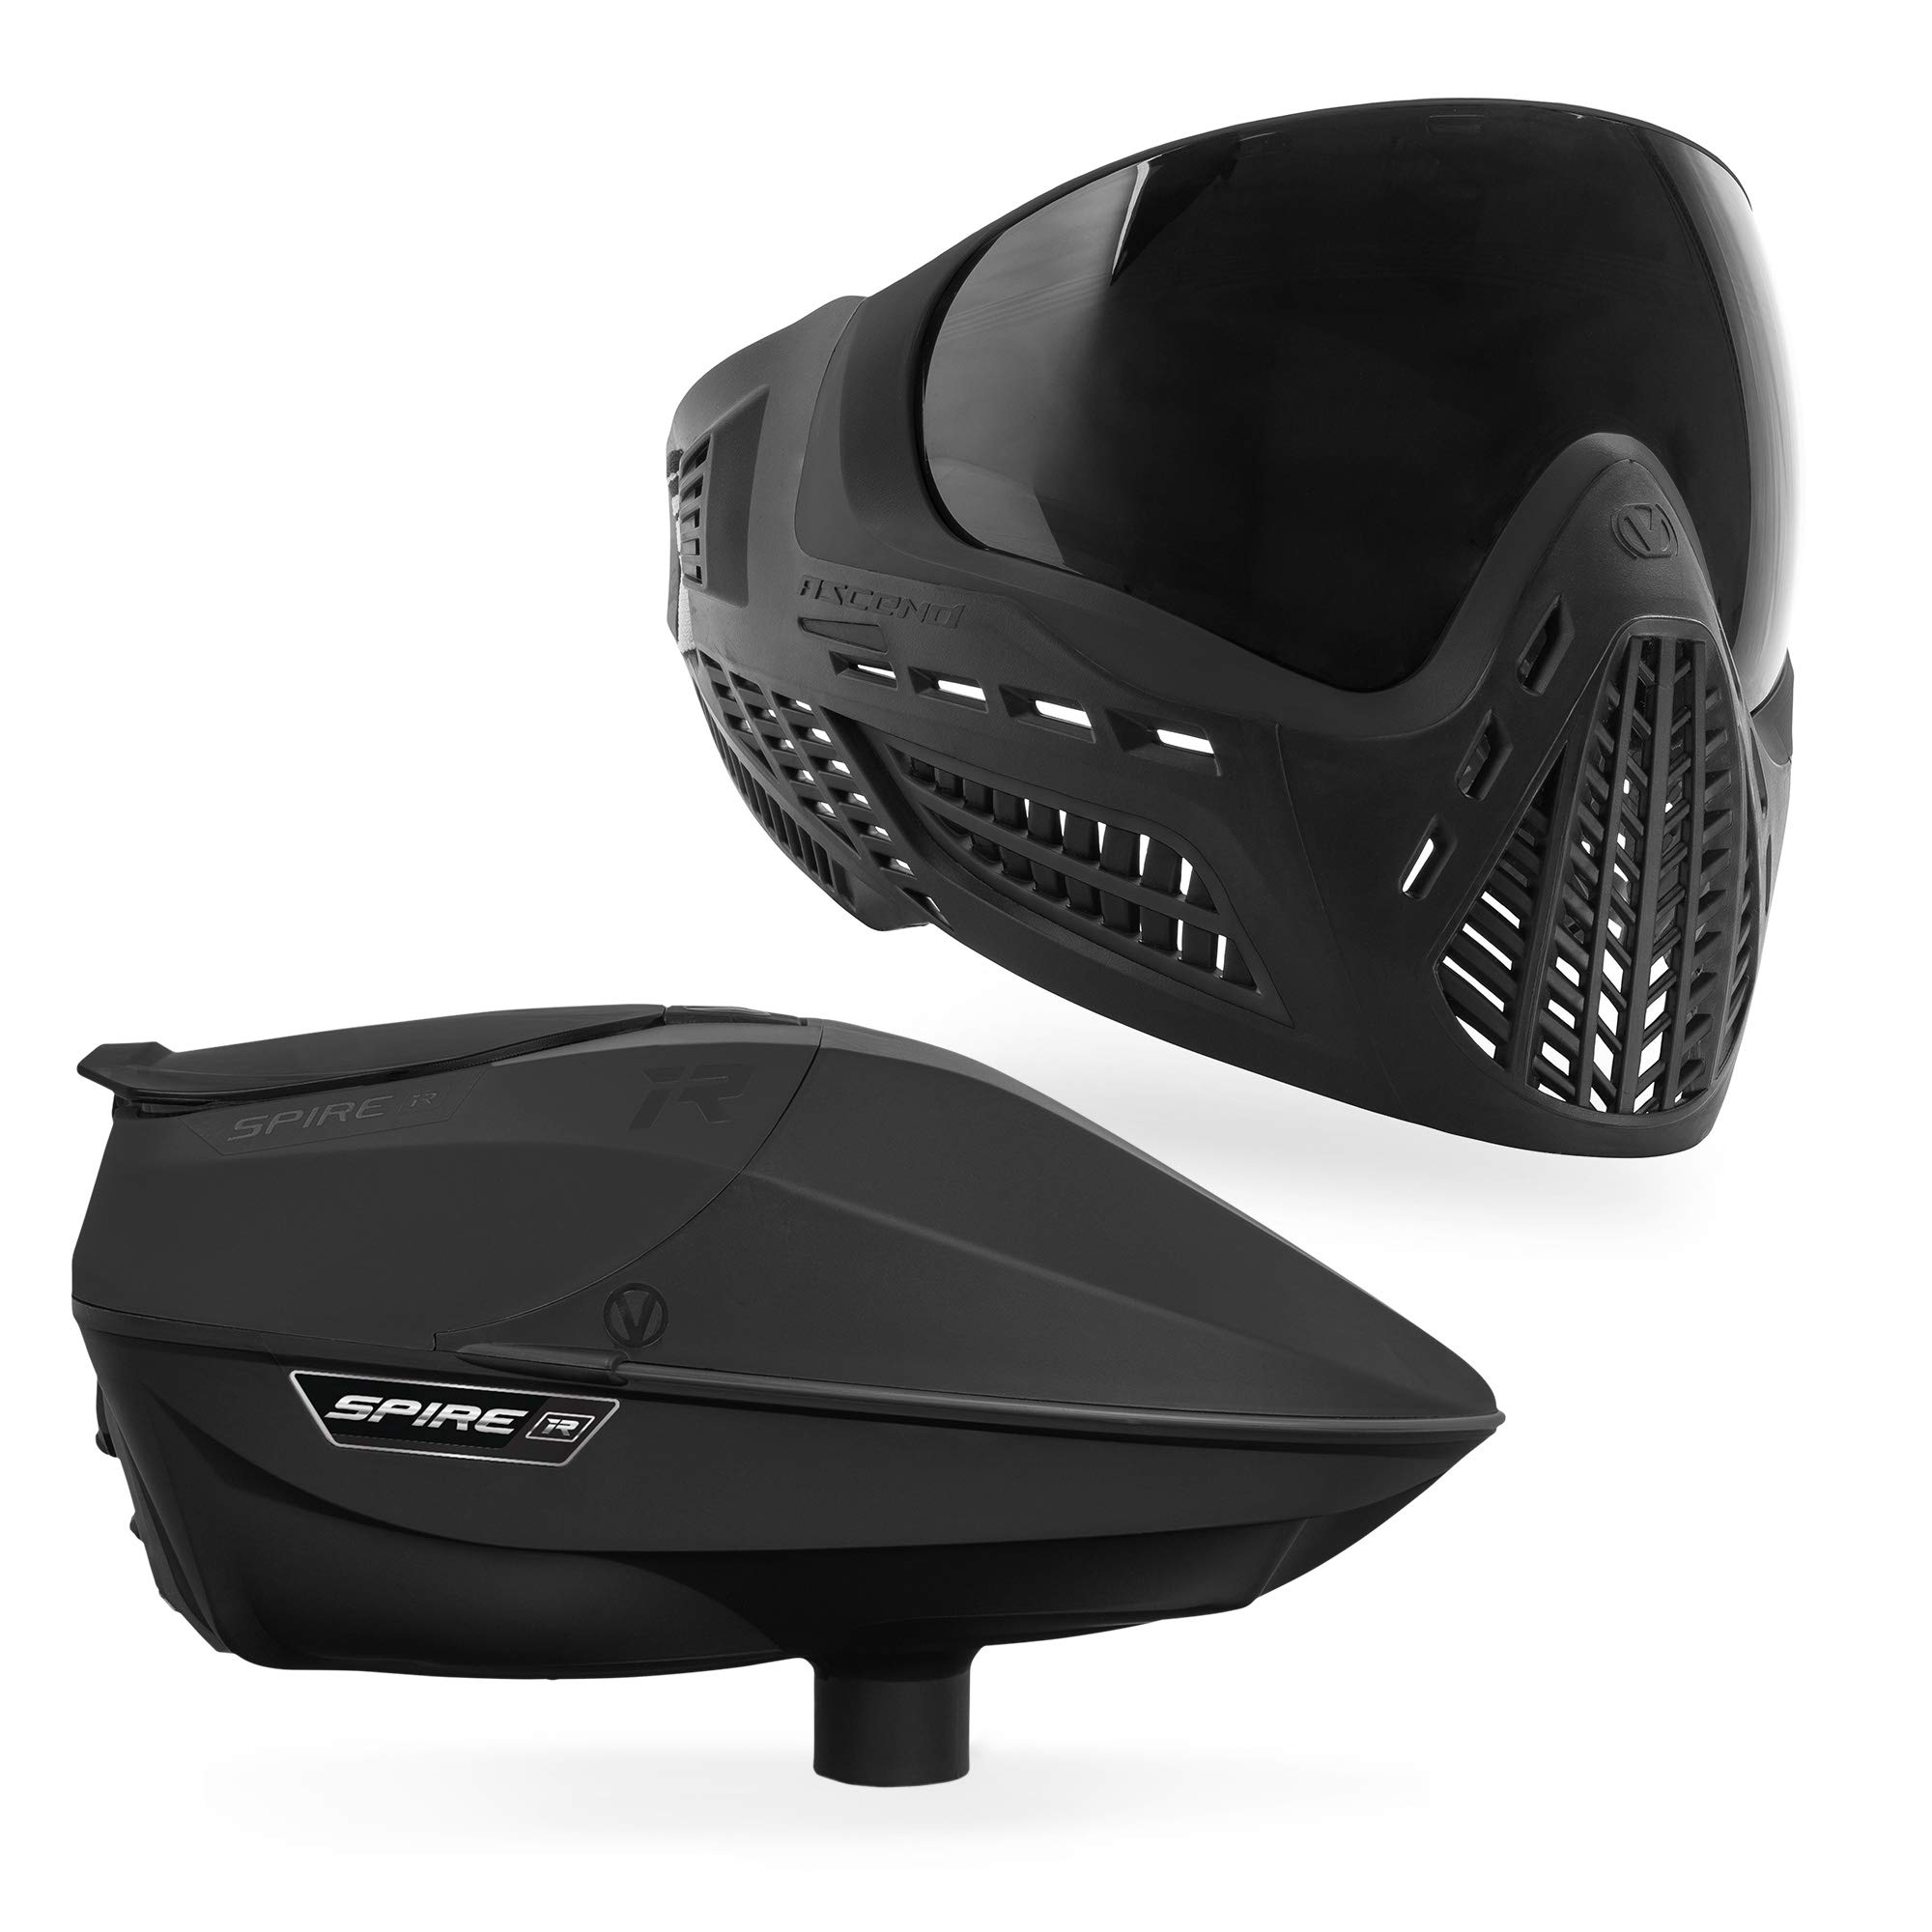 Virtue Spire IR Electronic Paintball Loader and VIO Ascend Mask Bundle - Black by Virtue Paintball